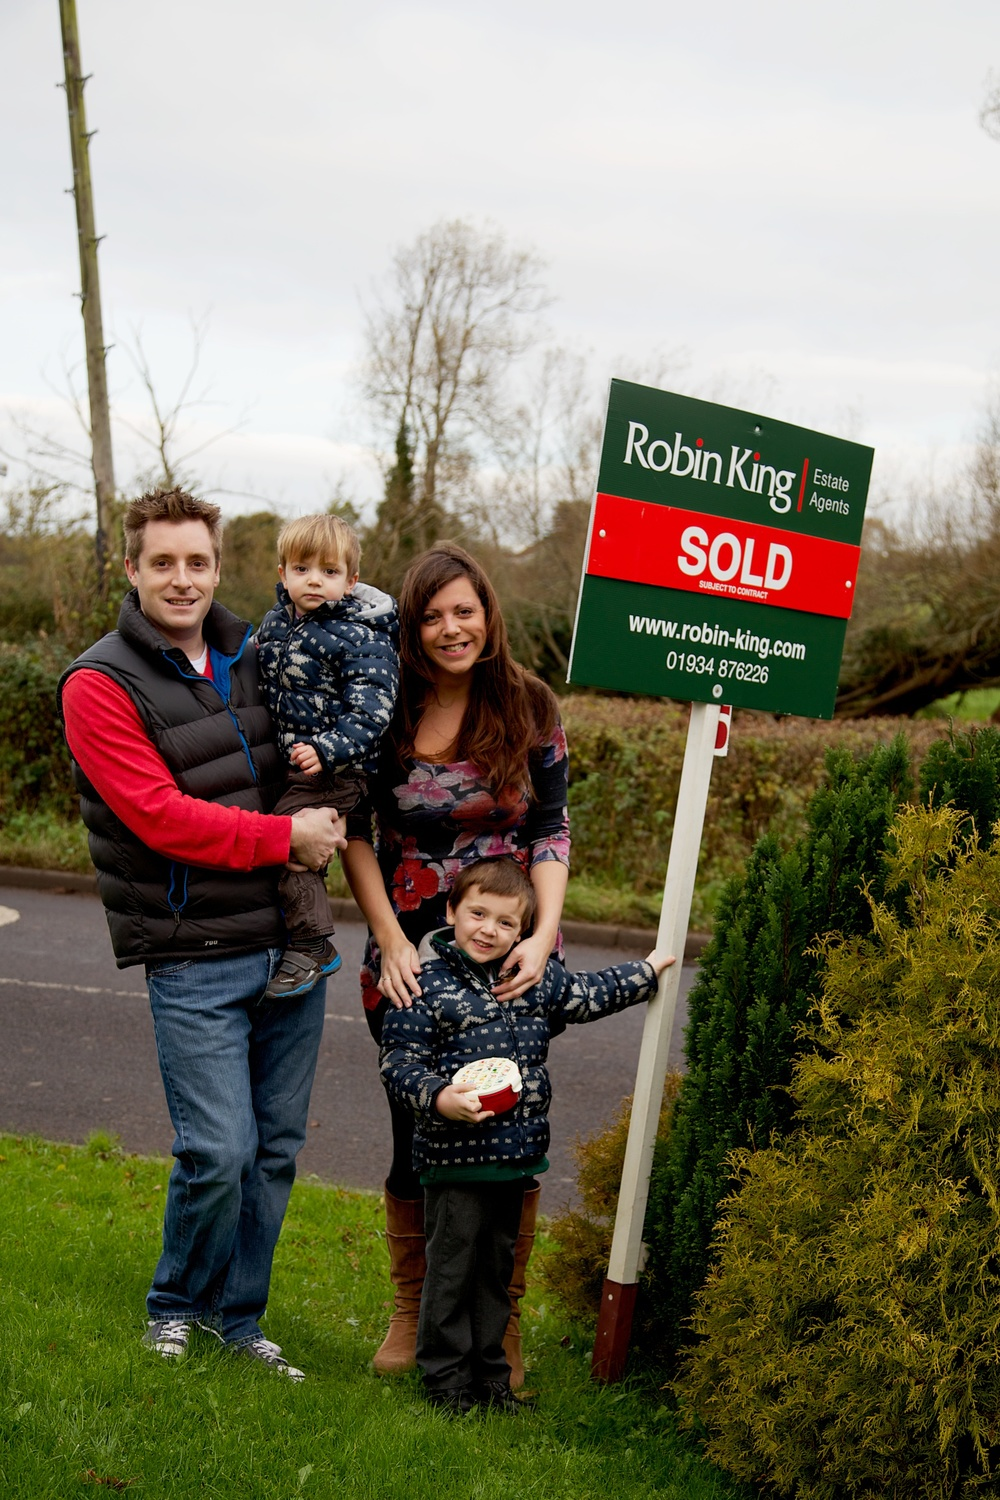 new home sold sign.jpg